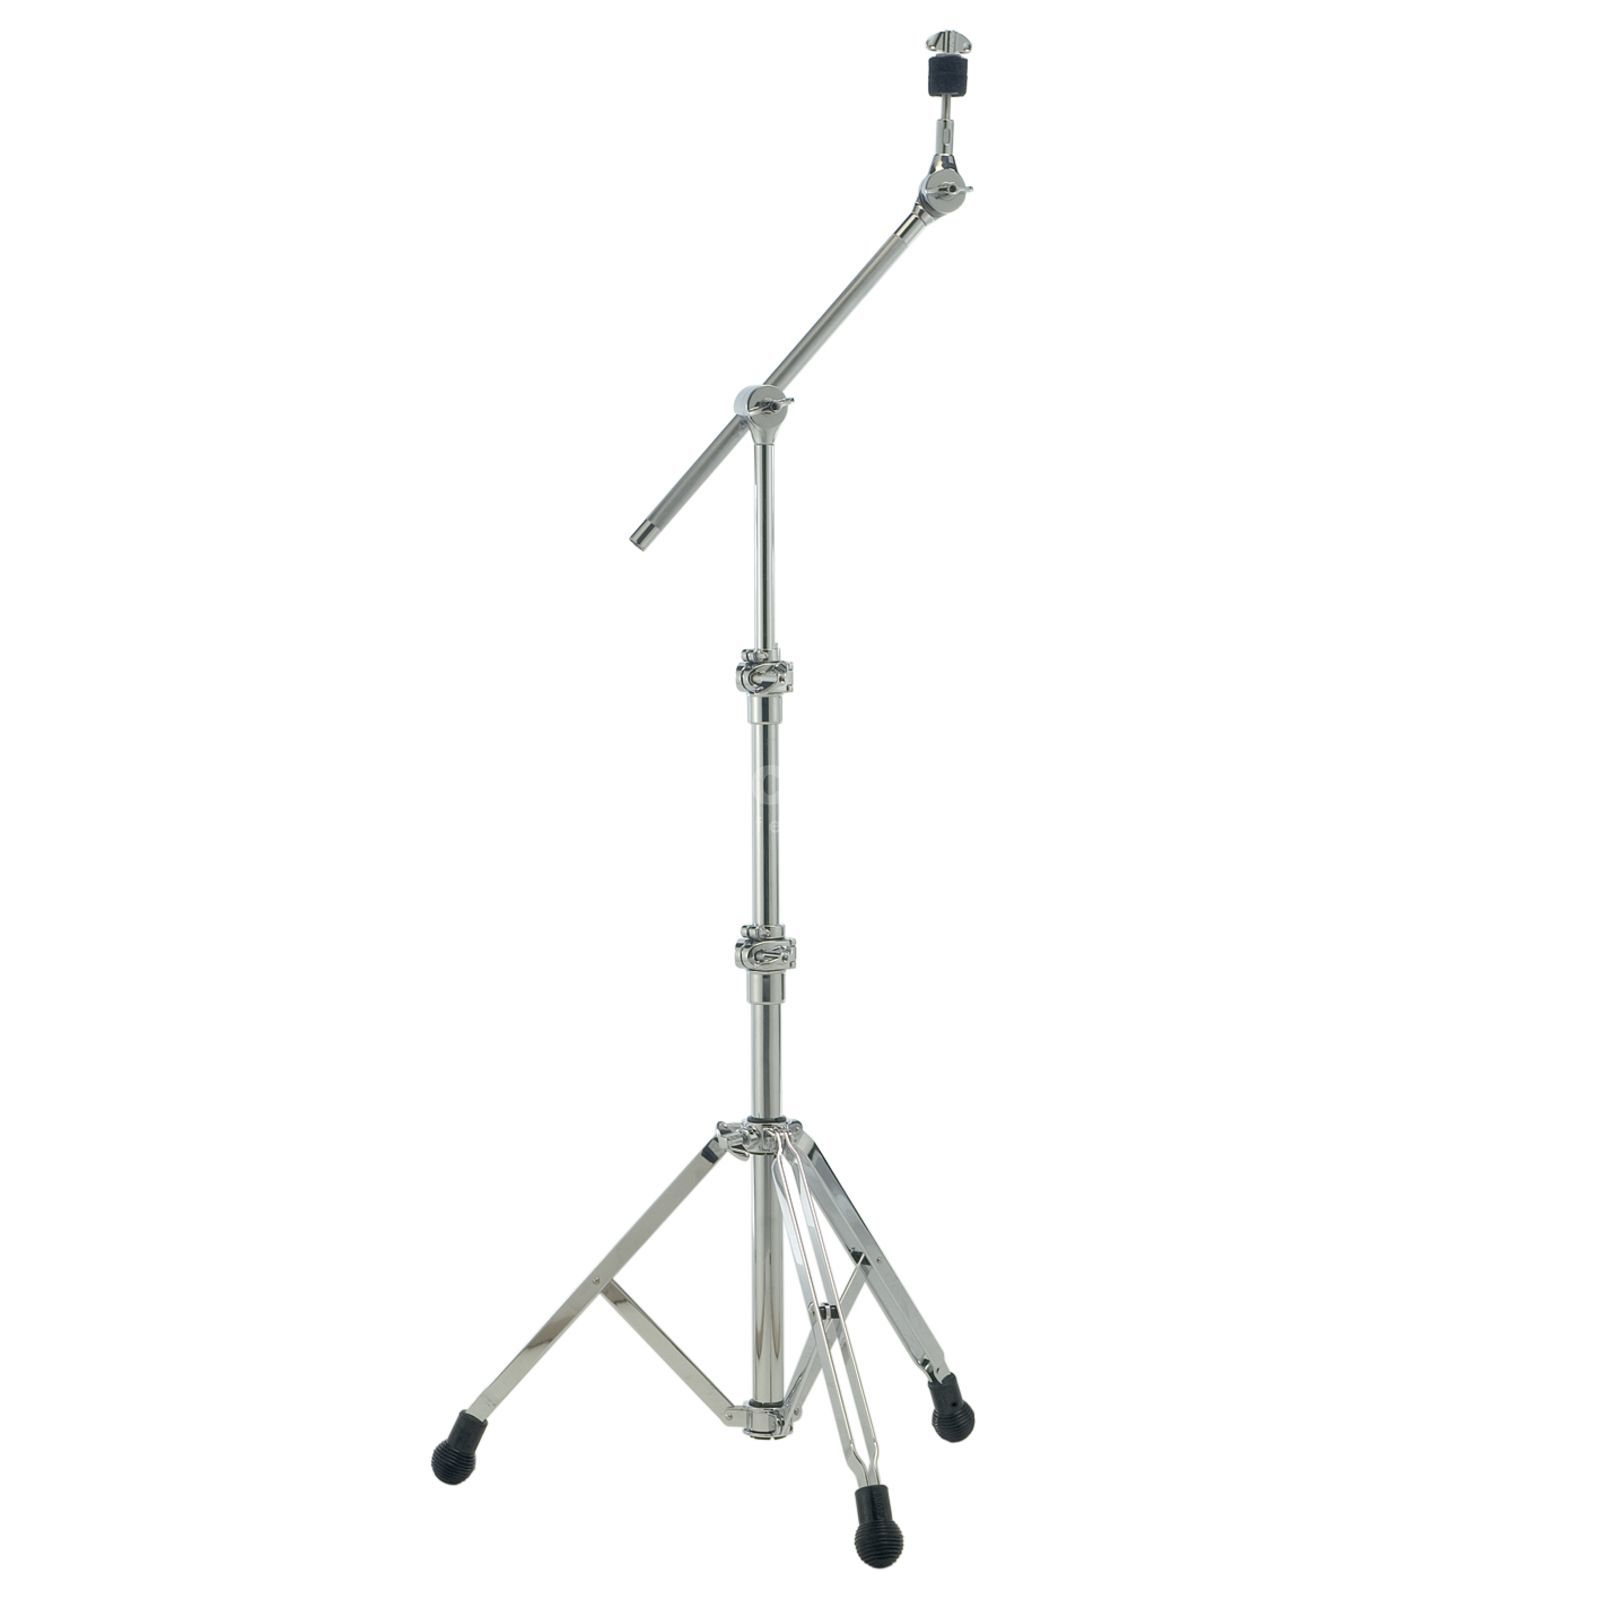 Sonor Cymbal Boom Stand CBS672  Product Image